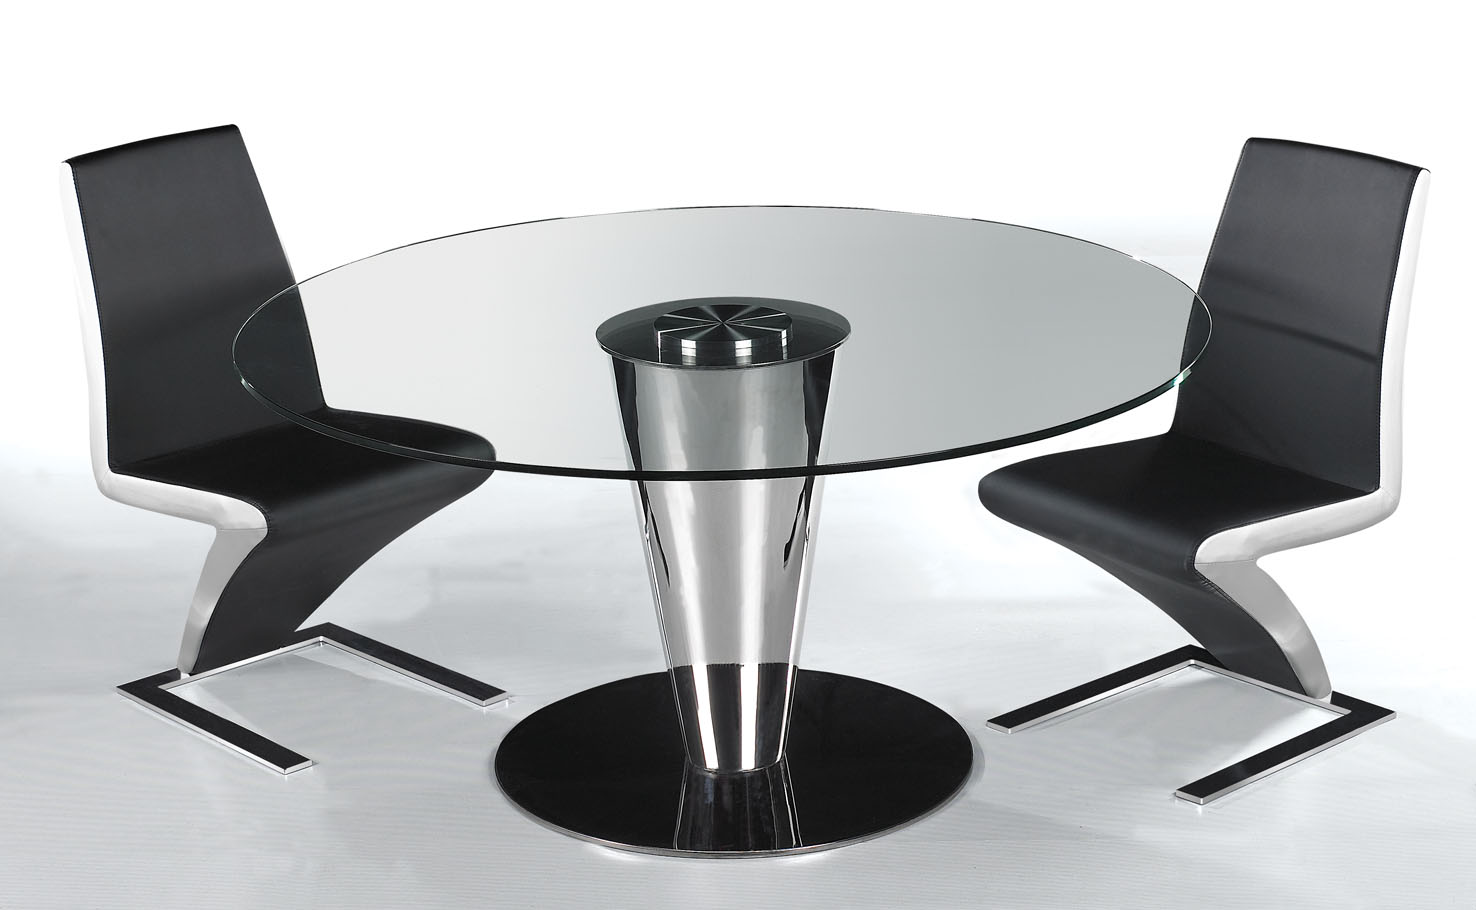 Image of: Glass table and chairs for sale